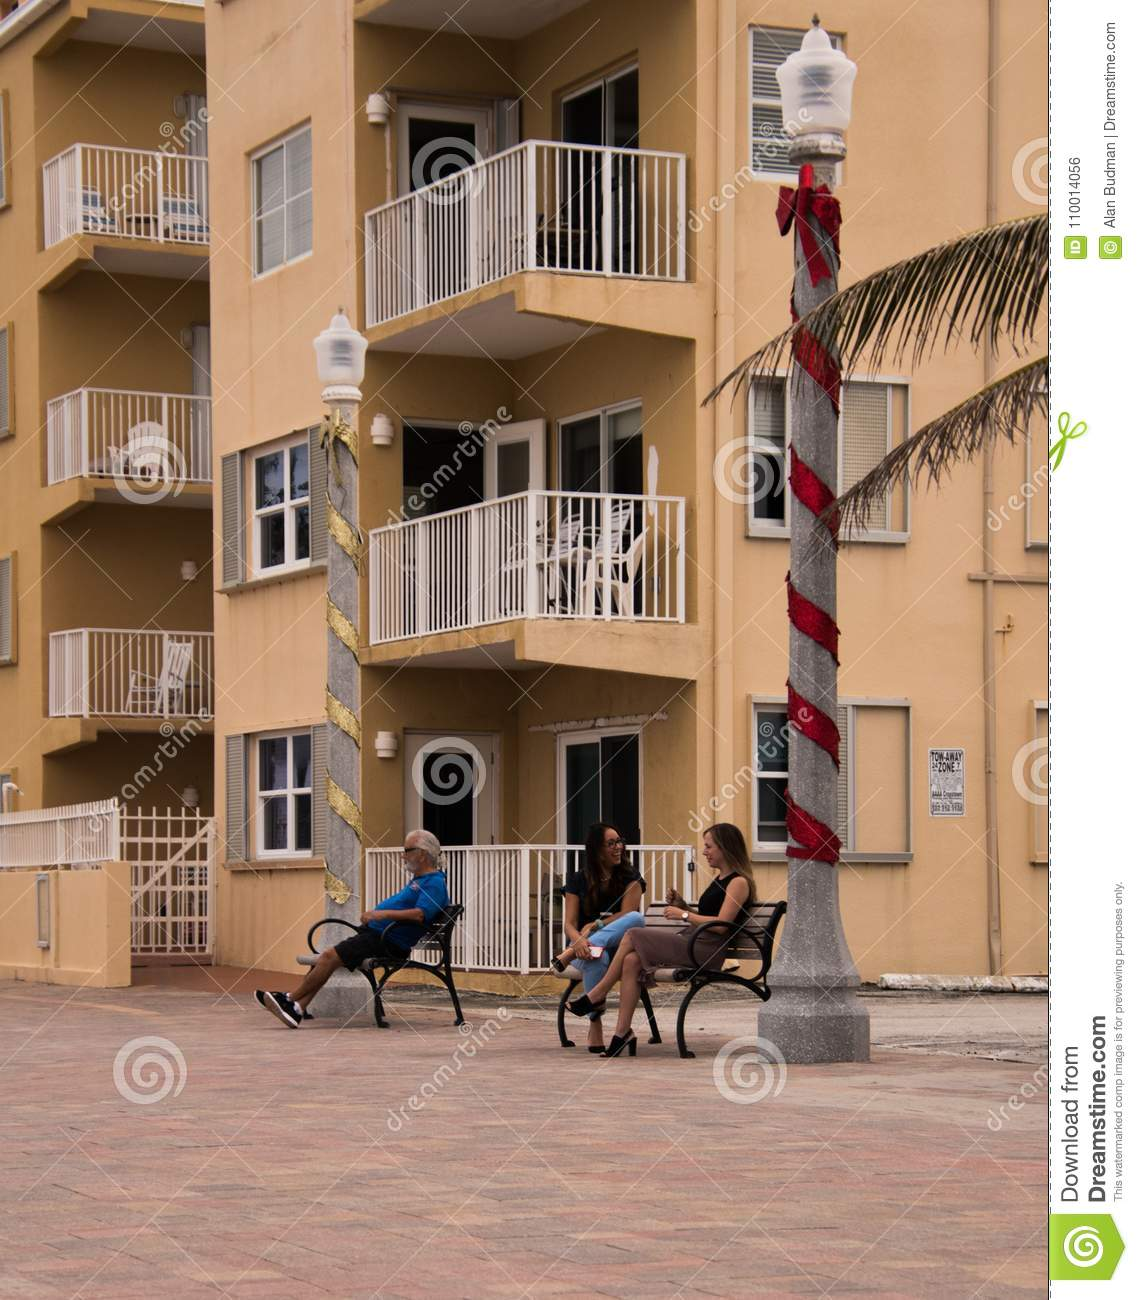 Three people on benches in Hollywood, Florida